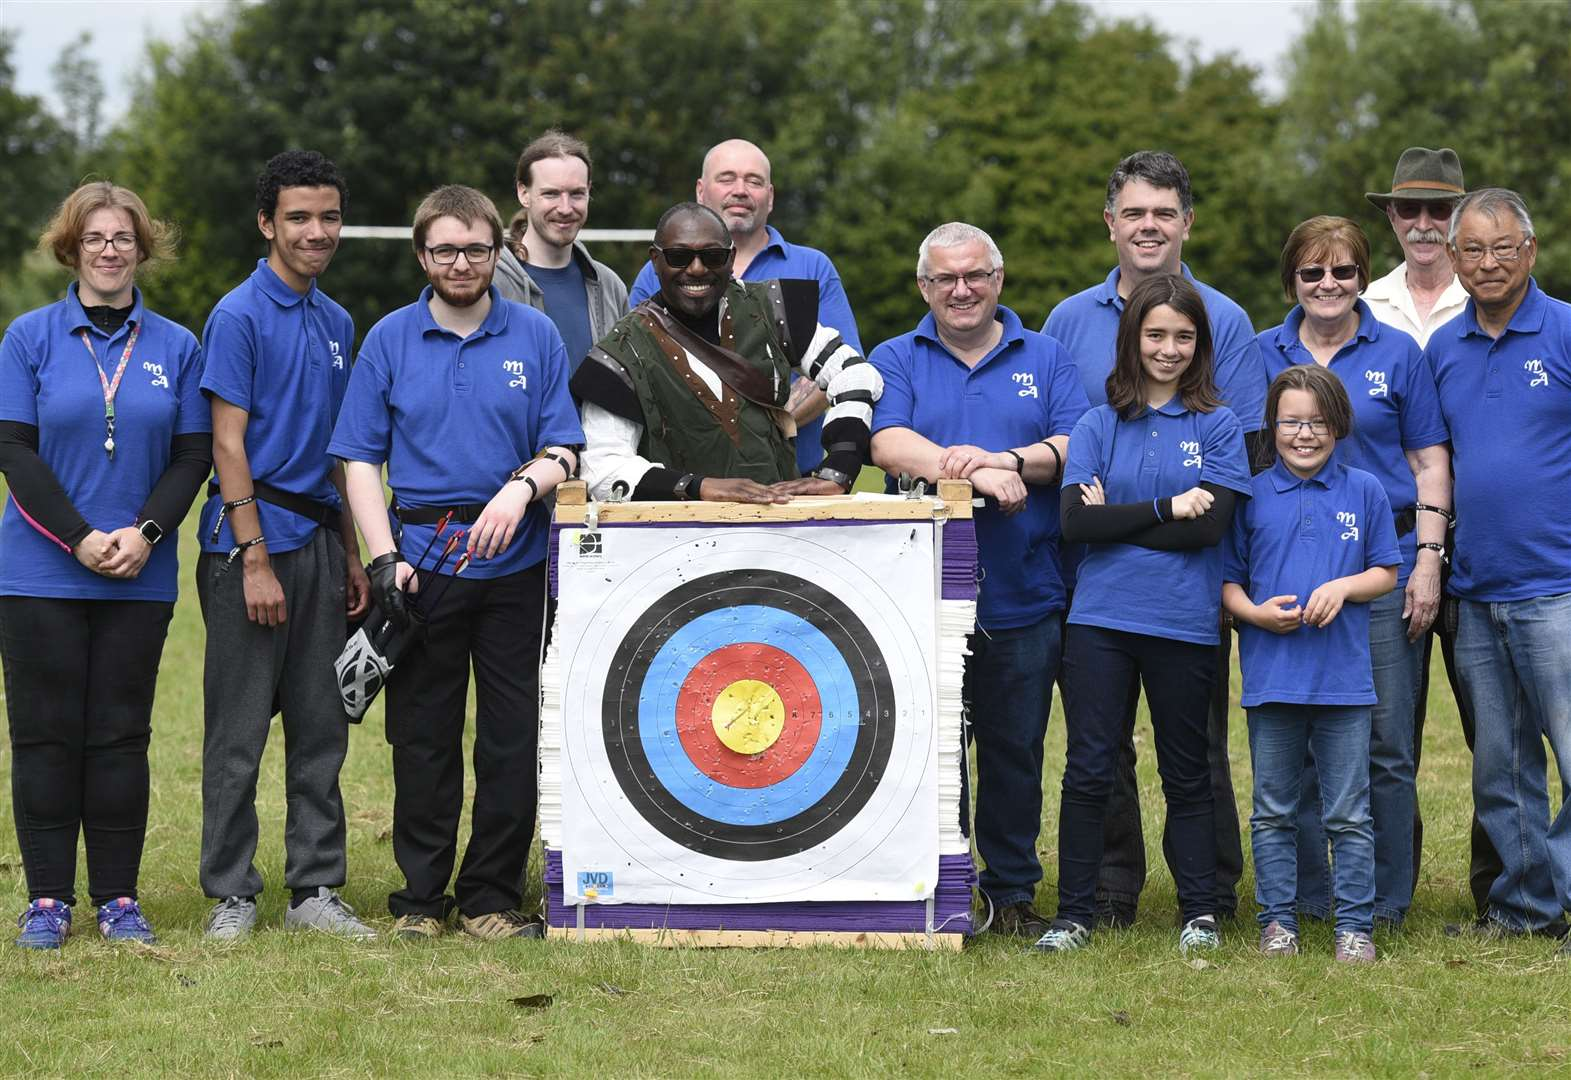 Marshland Archers say come and give archery a go